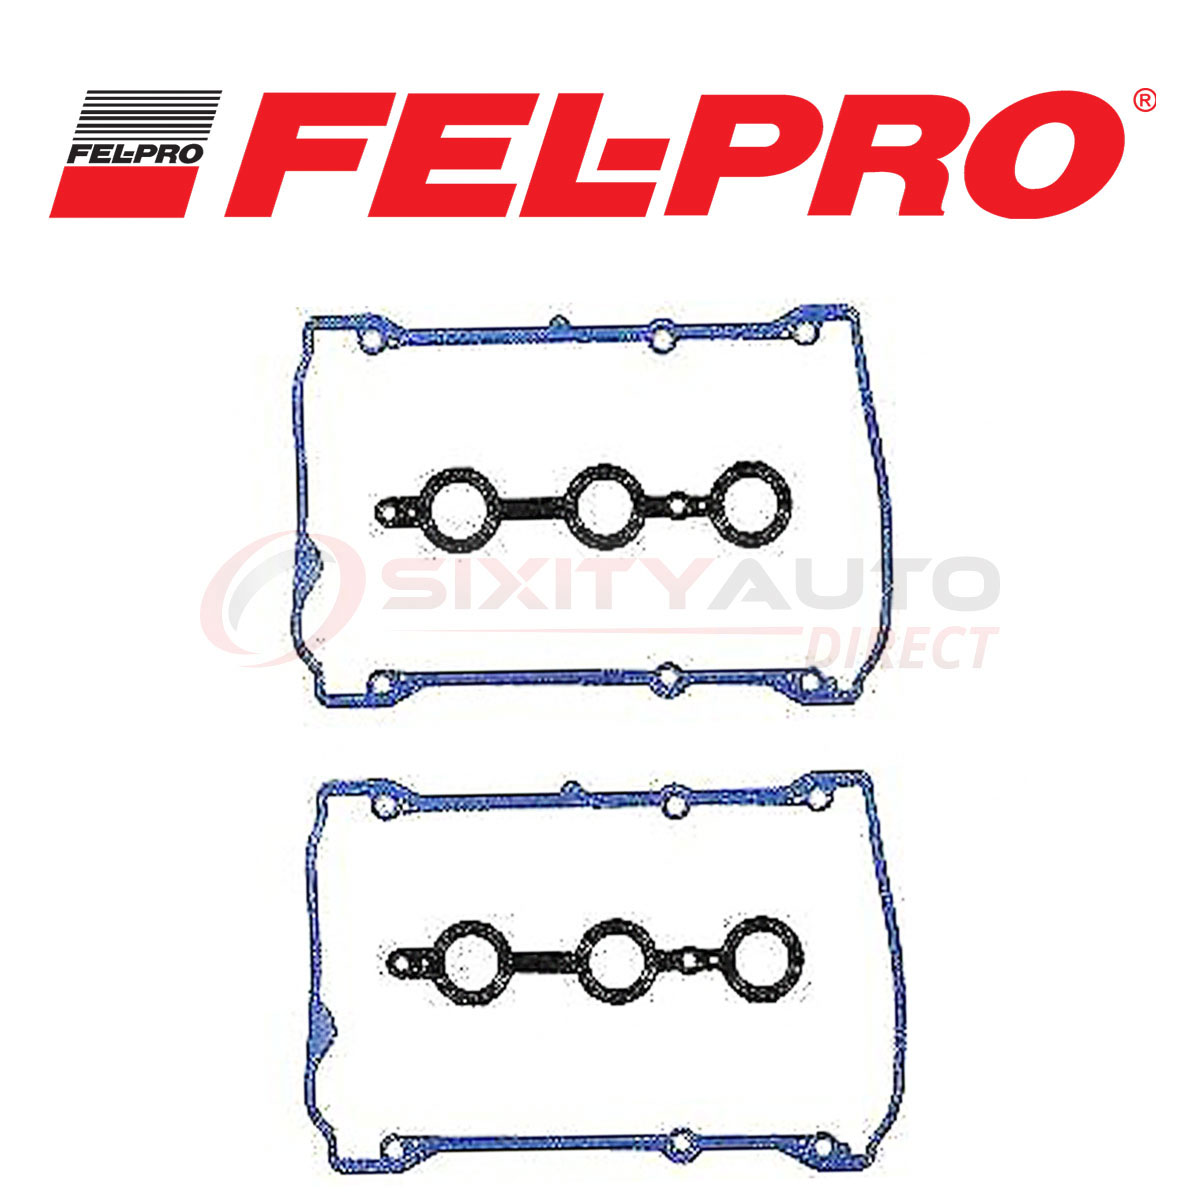 Fel Pro Valve Cover Gasket Set For 1998-2001 Audi A6 2 8l V6